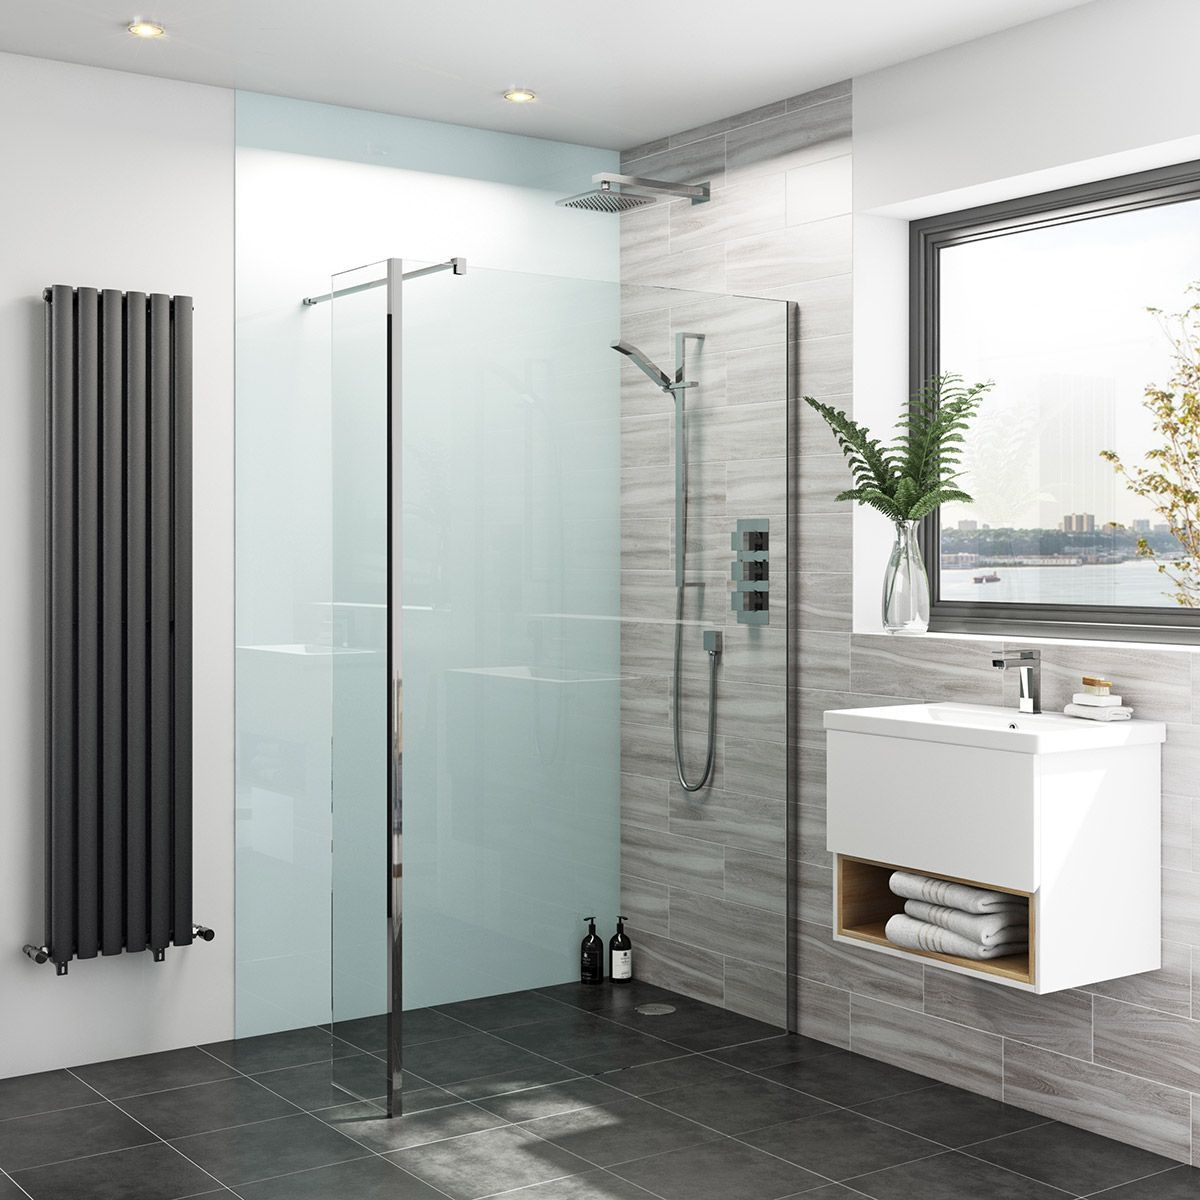 Zenolite Plus Air Acrylic Shower Wall Panel 2440 X 1220 Bathroom Shower Panels Acrylic Shower Walls Shower Wall Panels